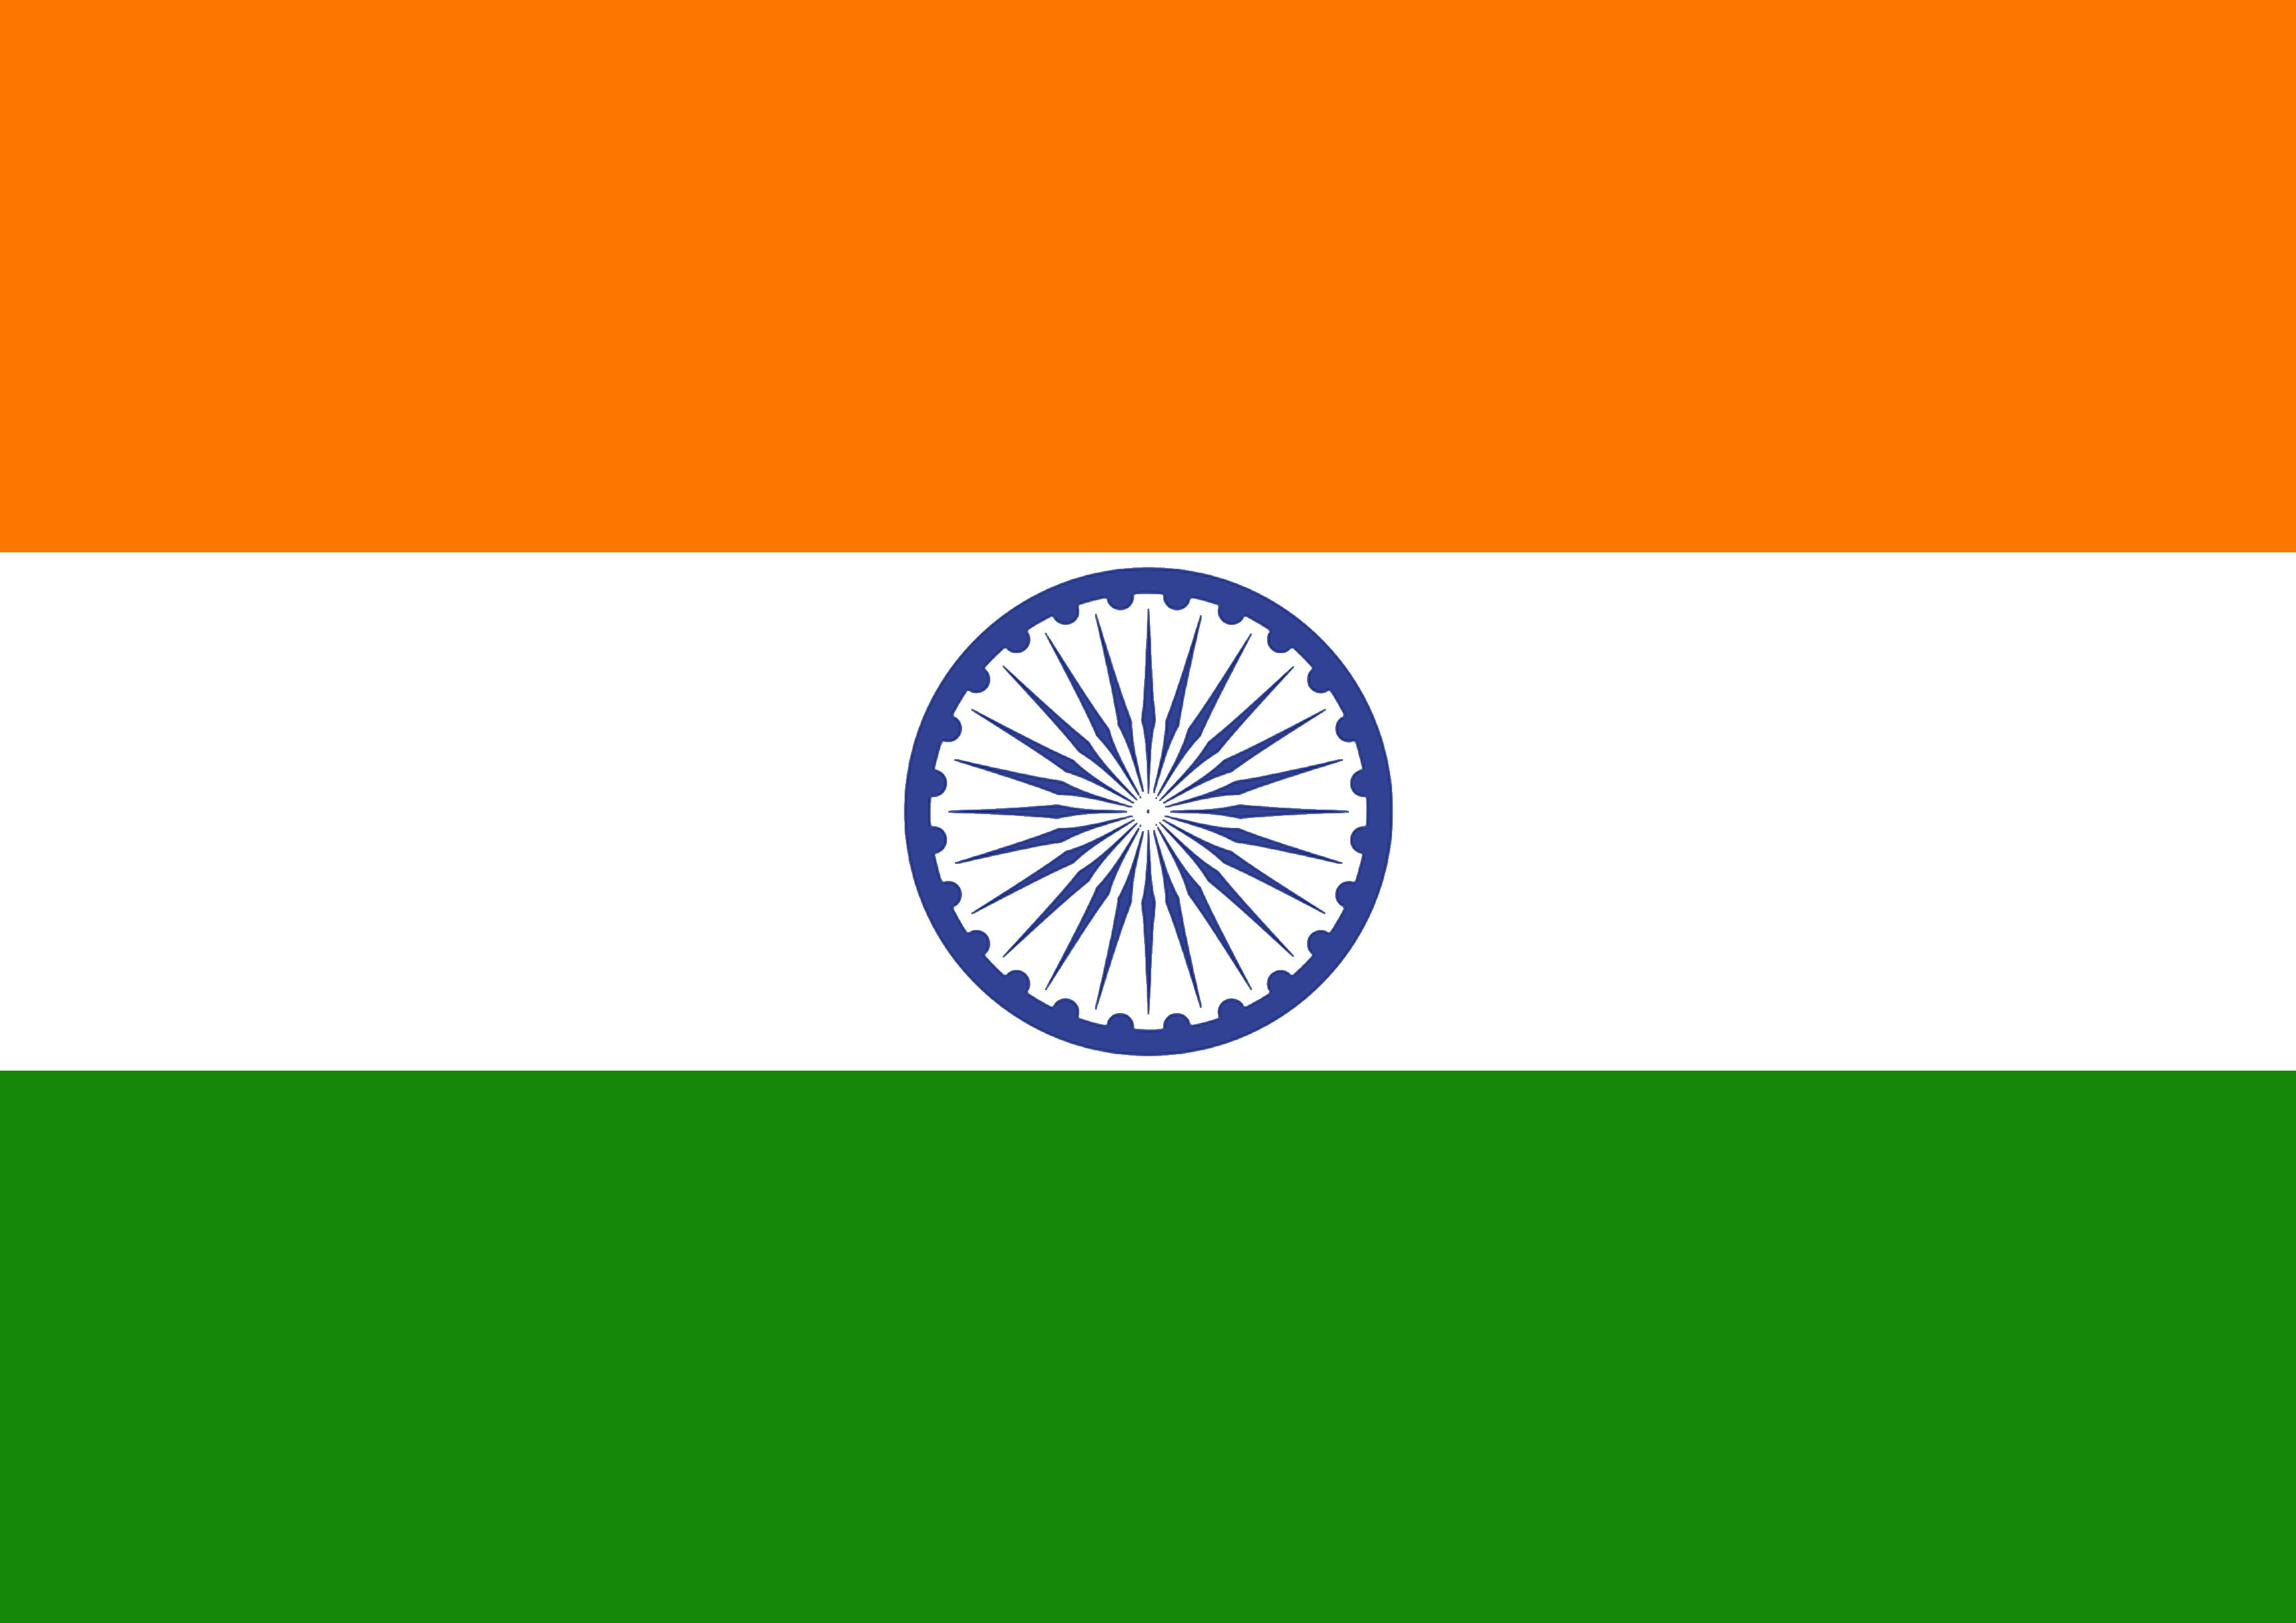 Indian Flag Images Hd720p: Happy-Independence-Day-India-Flag-Full-Hd-Wallpapers1